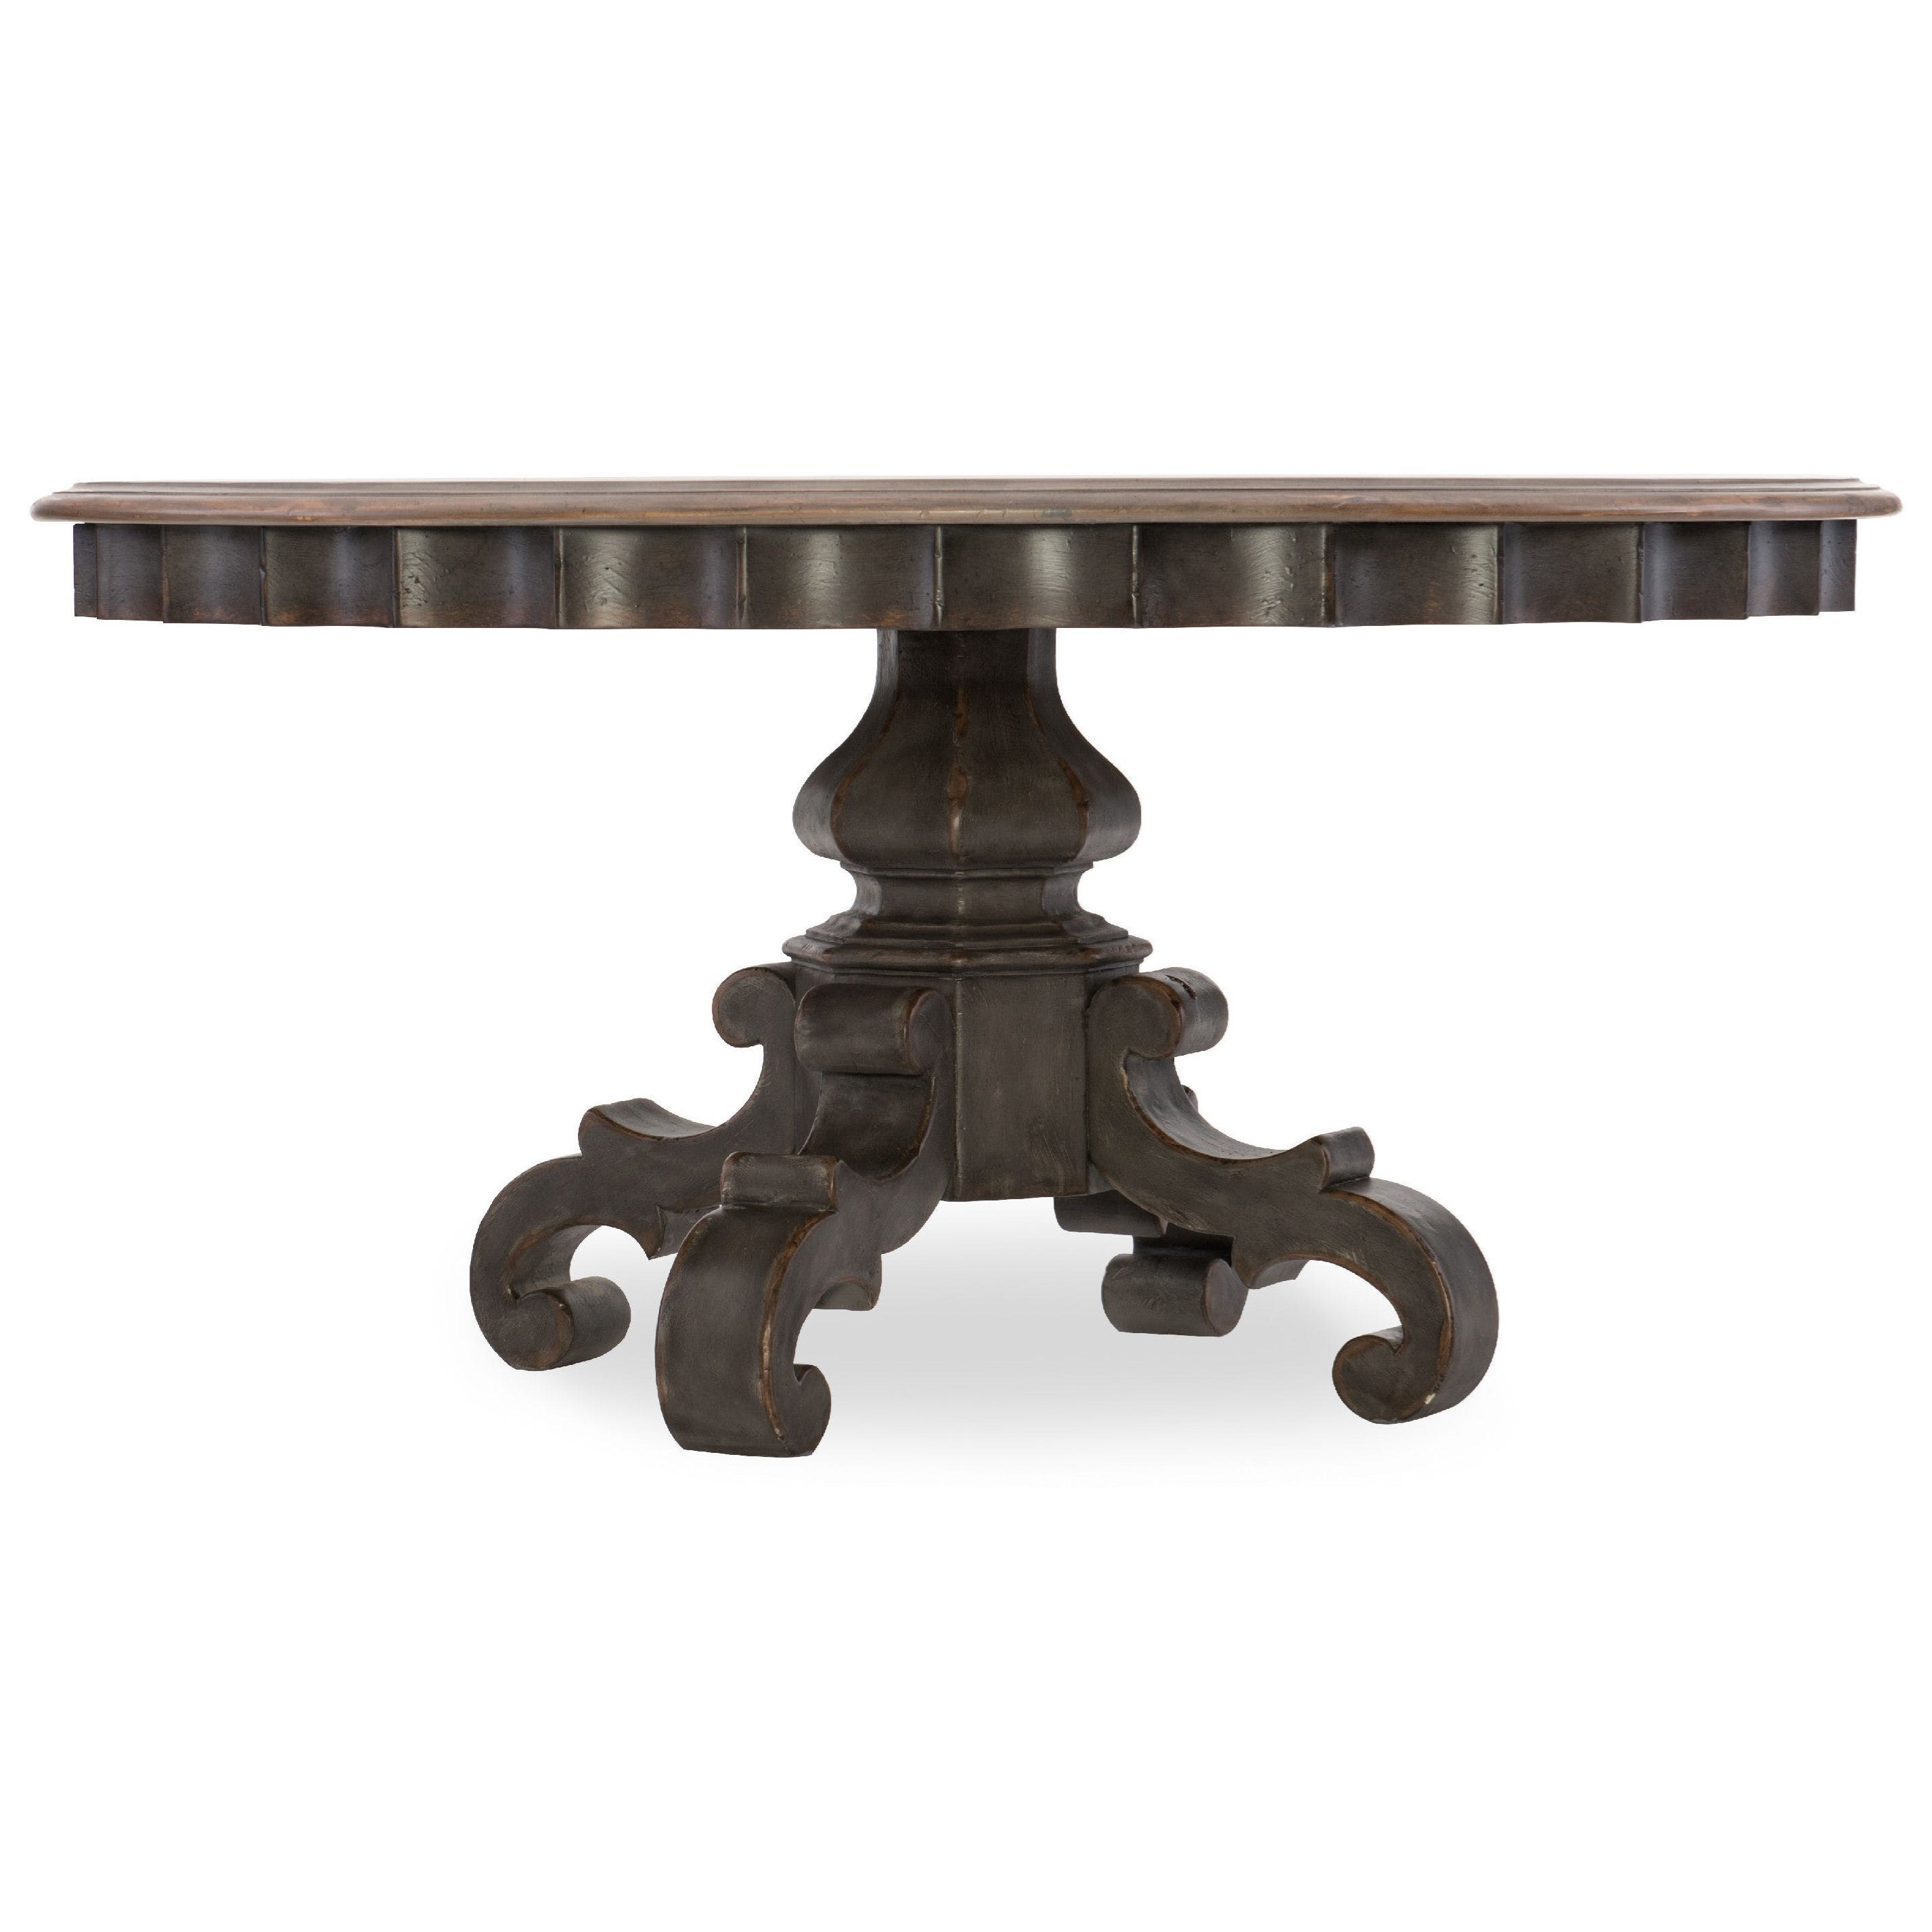 60in Round Pedestal Dining Table